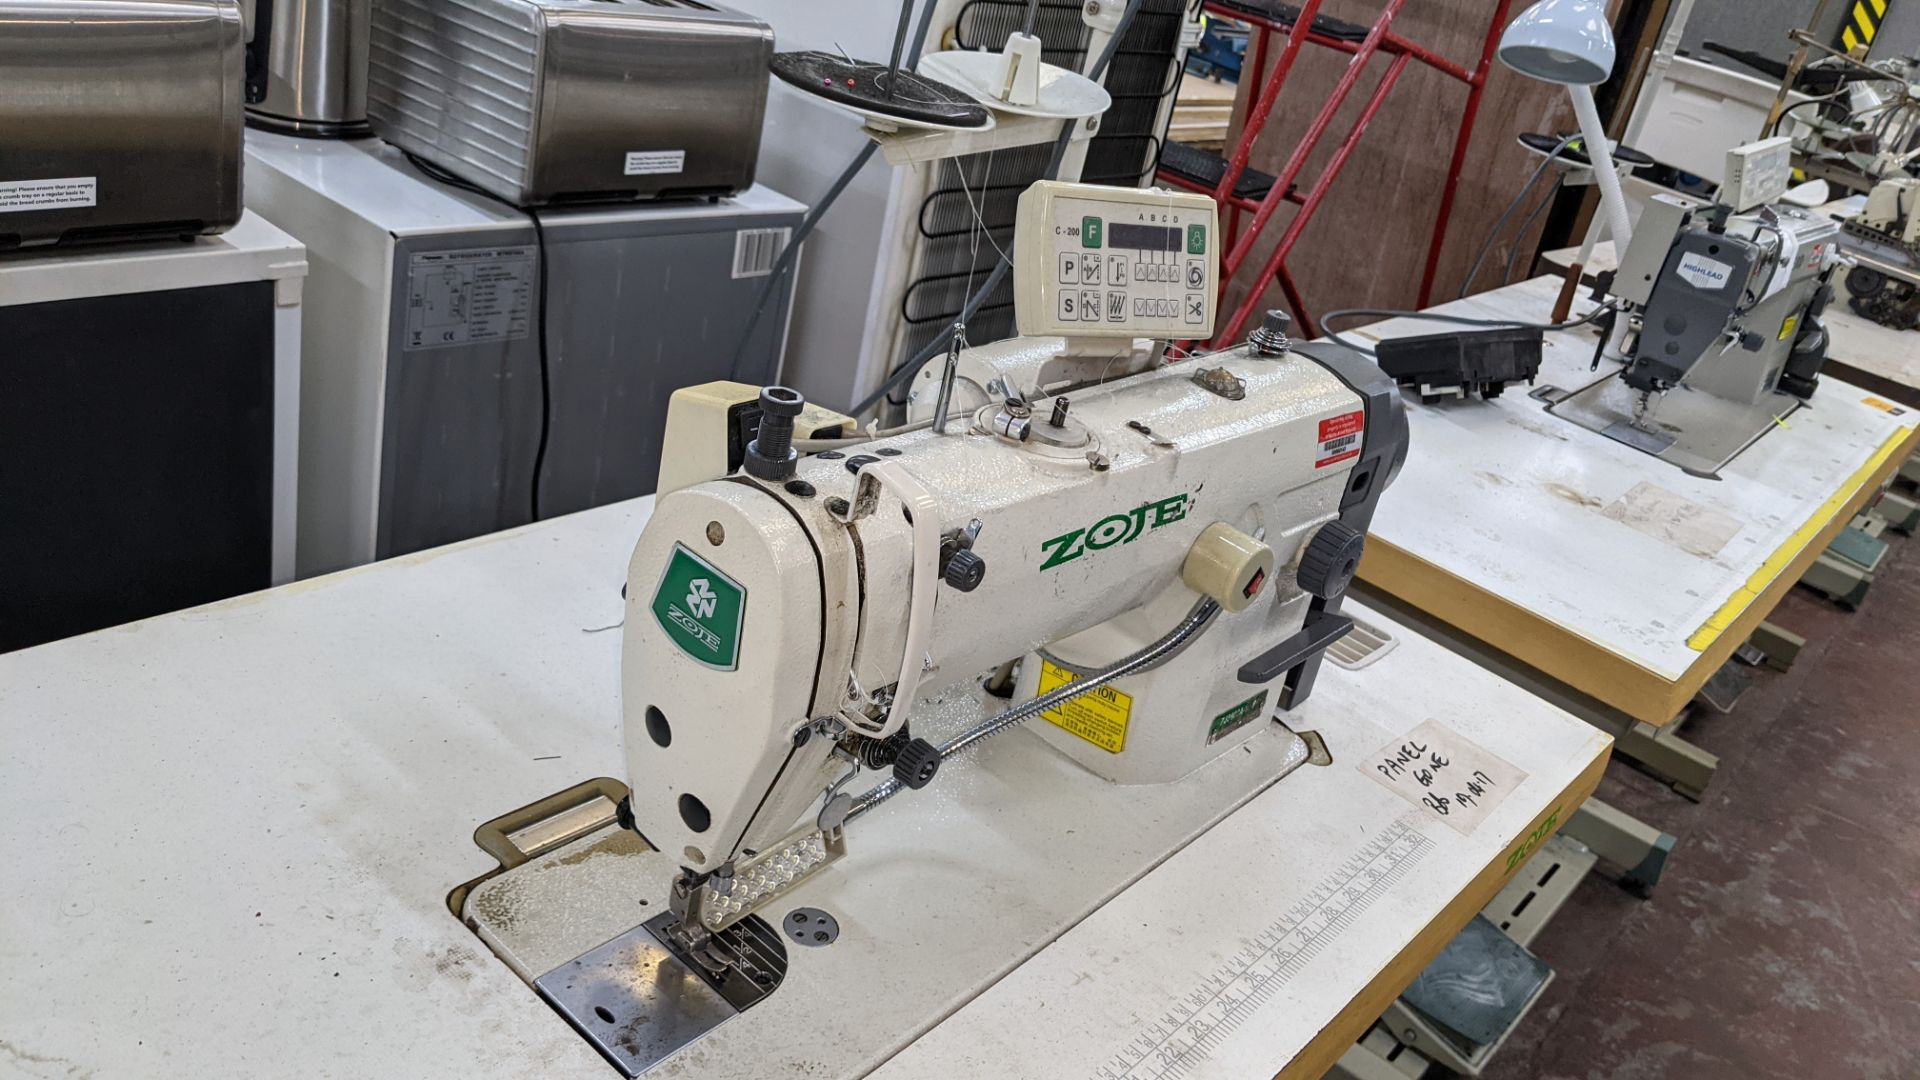 Zoje model ZJ8800A-D3/PF sewing machine with model C-200 digital controller - Image 9 of 15